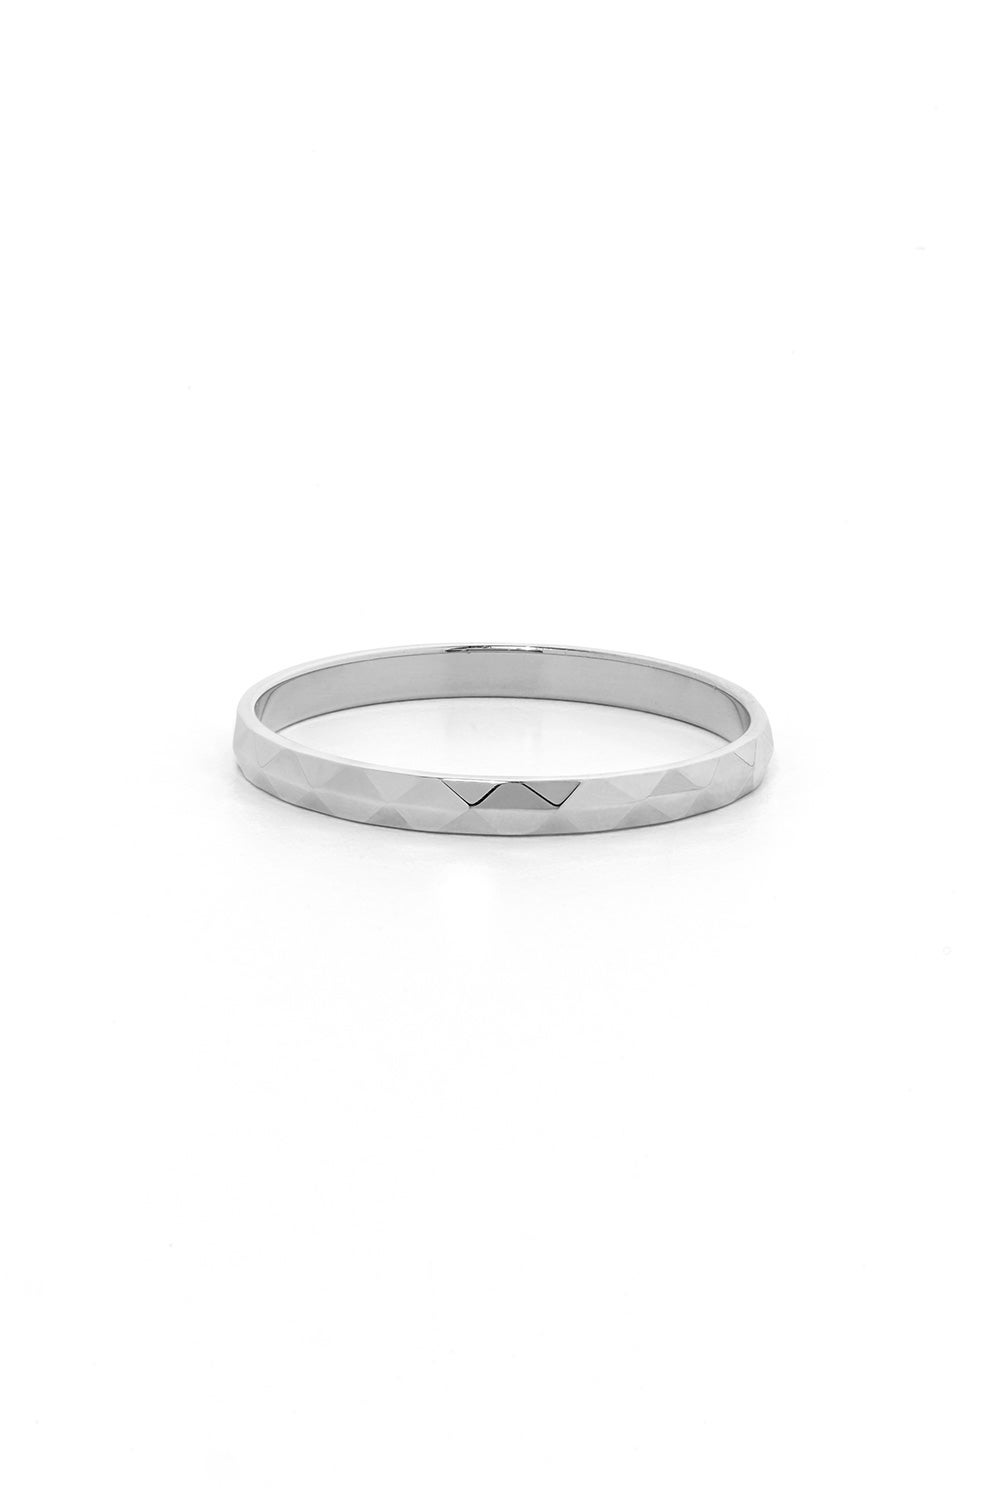 Bliss Band White Gold